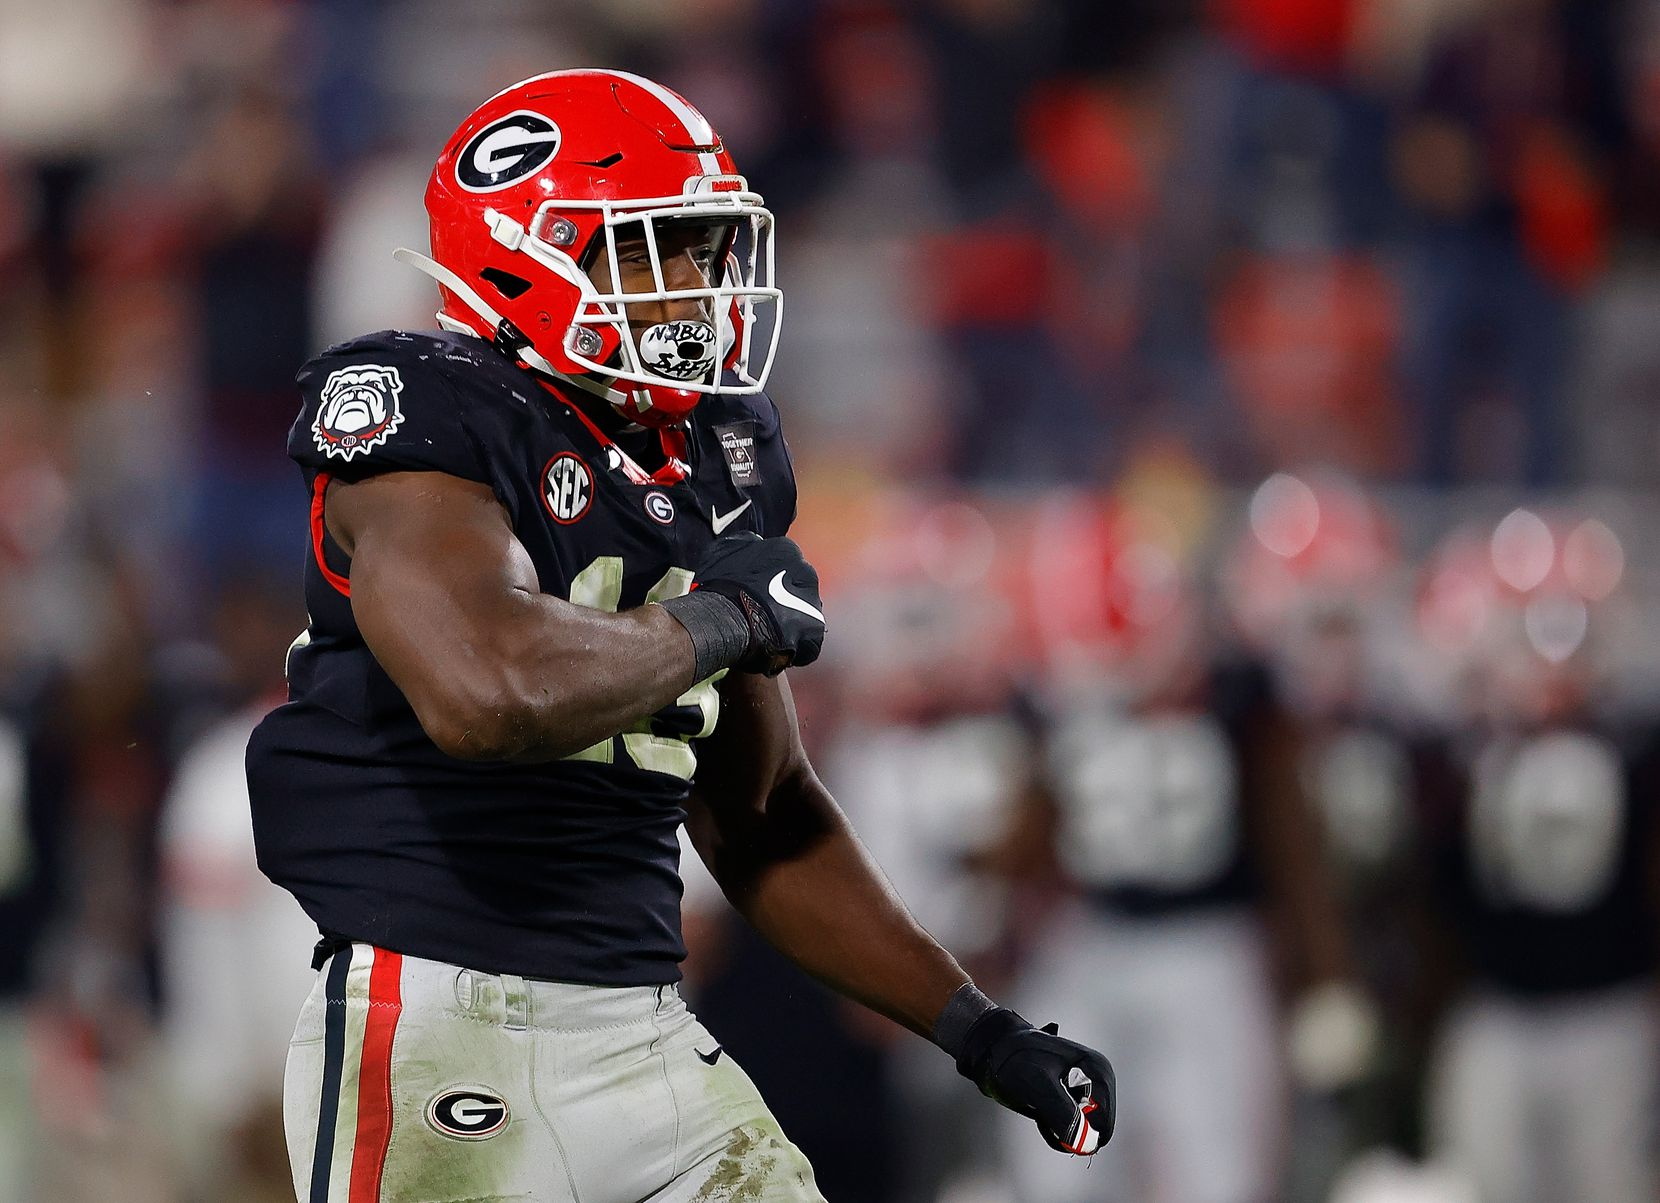 ATHENS, GEORGIA - NOVEMBER 21:  Azeez Ojulari #13 of the Georgia Bulldogs reacts after sacking Will Rogers #2 of the Mississippi State Bulldogs in the final minutes of the second half at Sanford Stadium on November 21, 2020 in Athens, Georgia. (Photo by Kevin C. Cox/Getty Images)